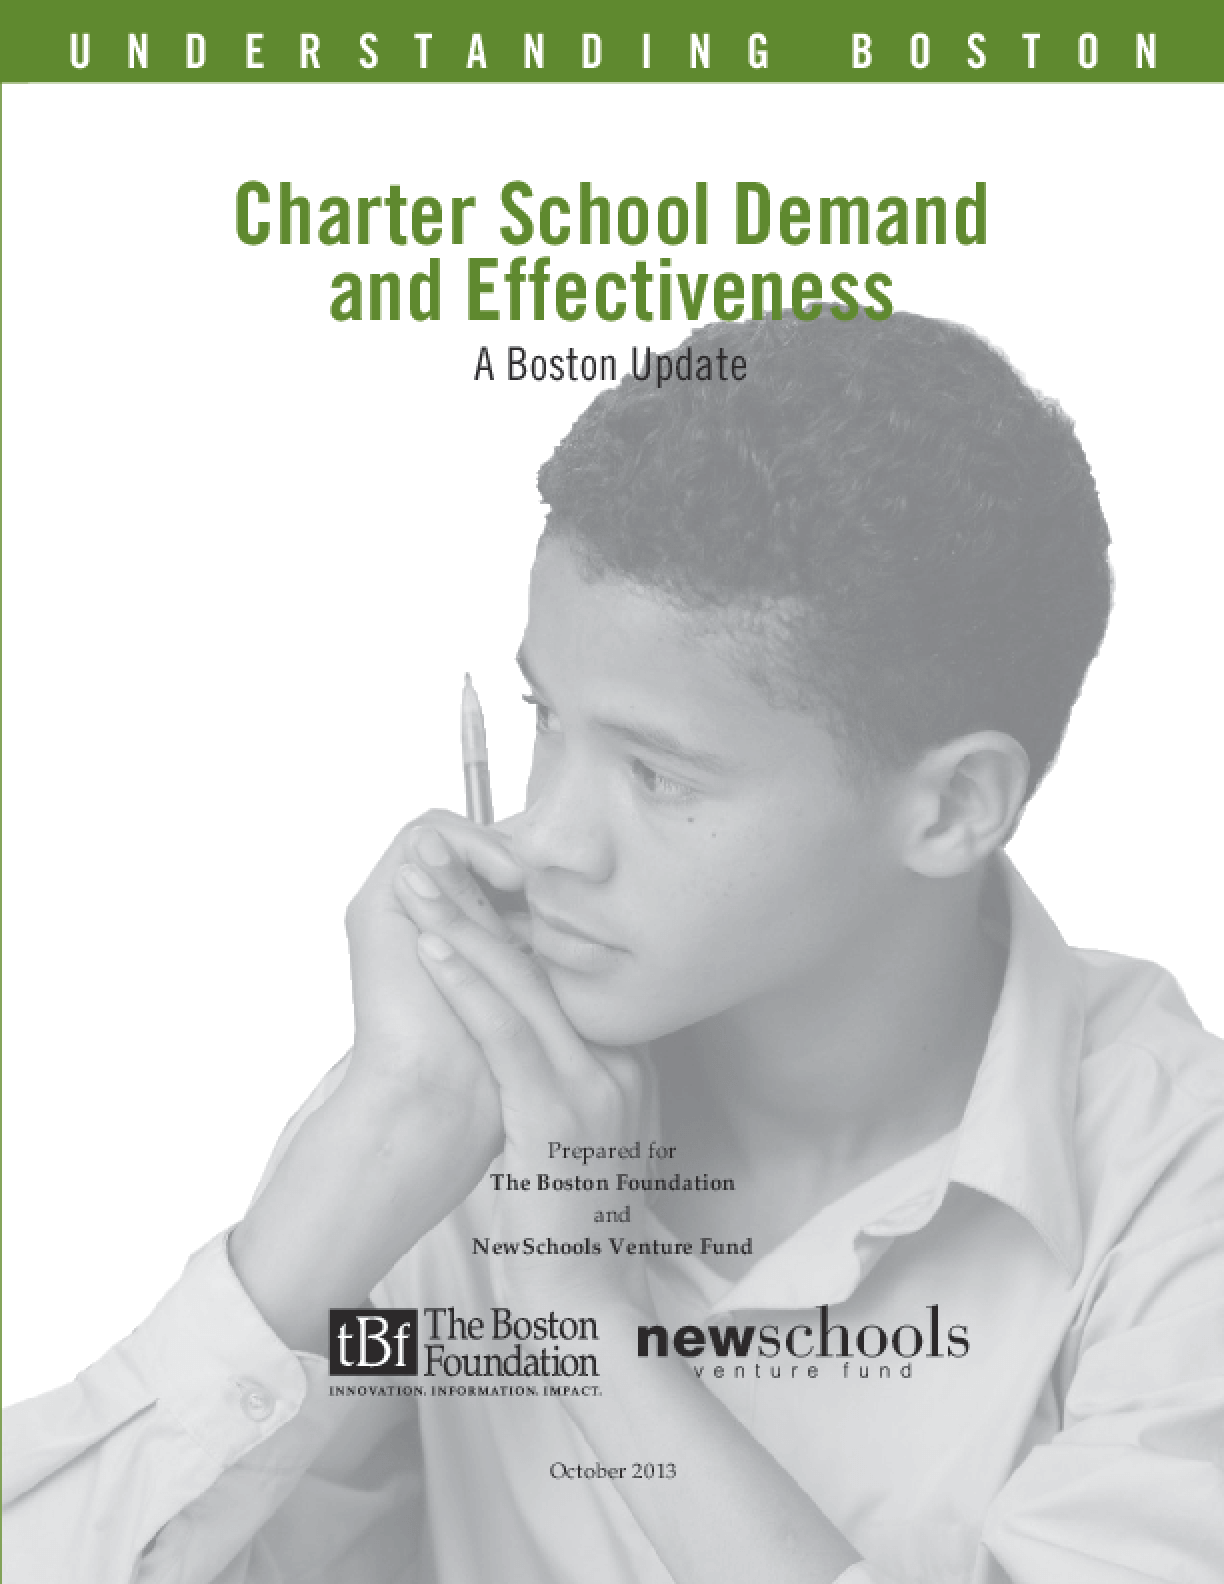 Charter School Demand and Effectiveness: A Boston Update